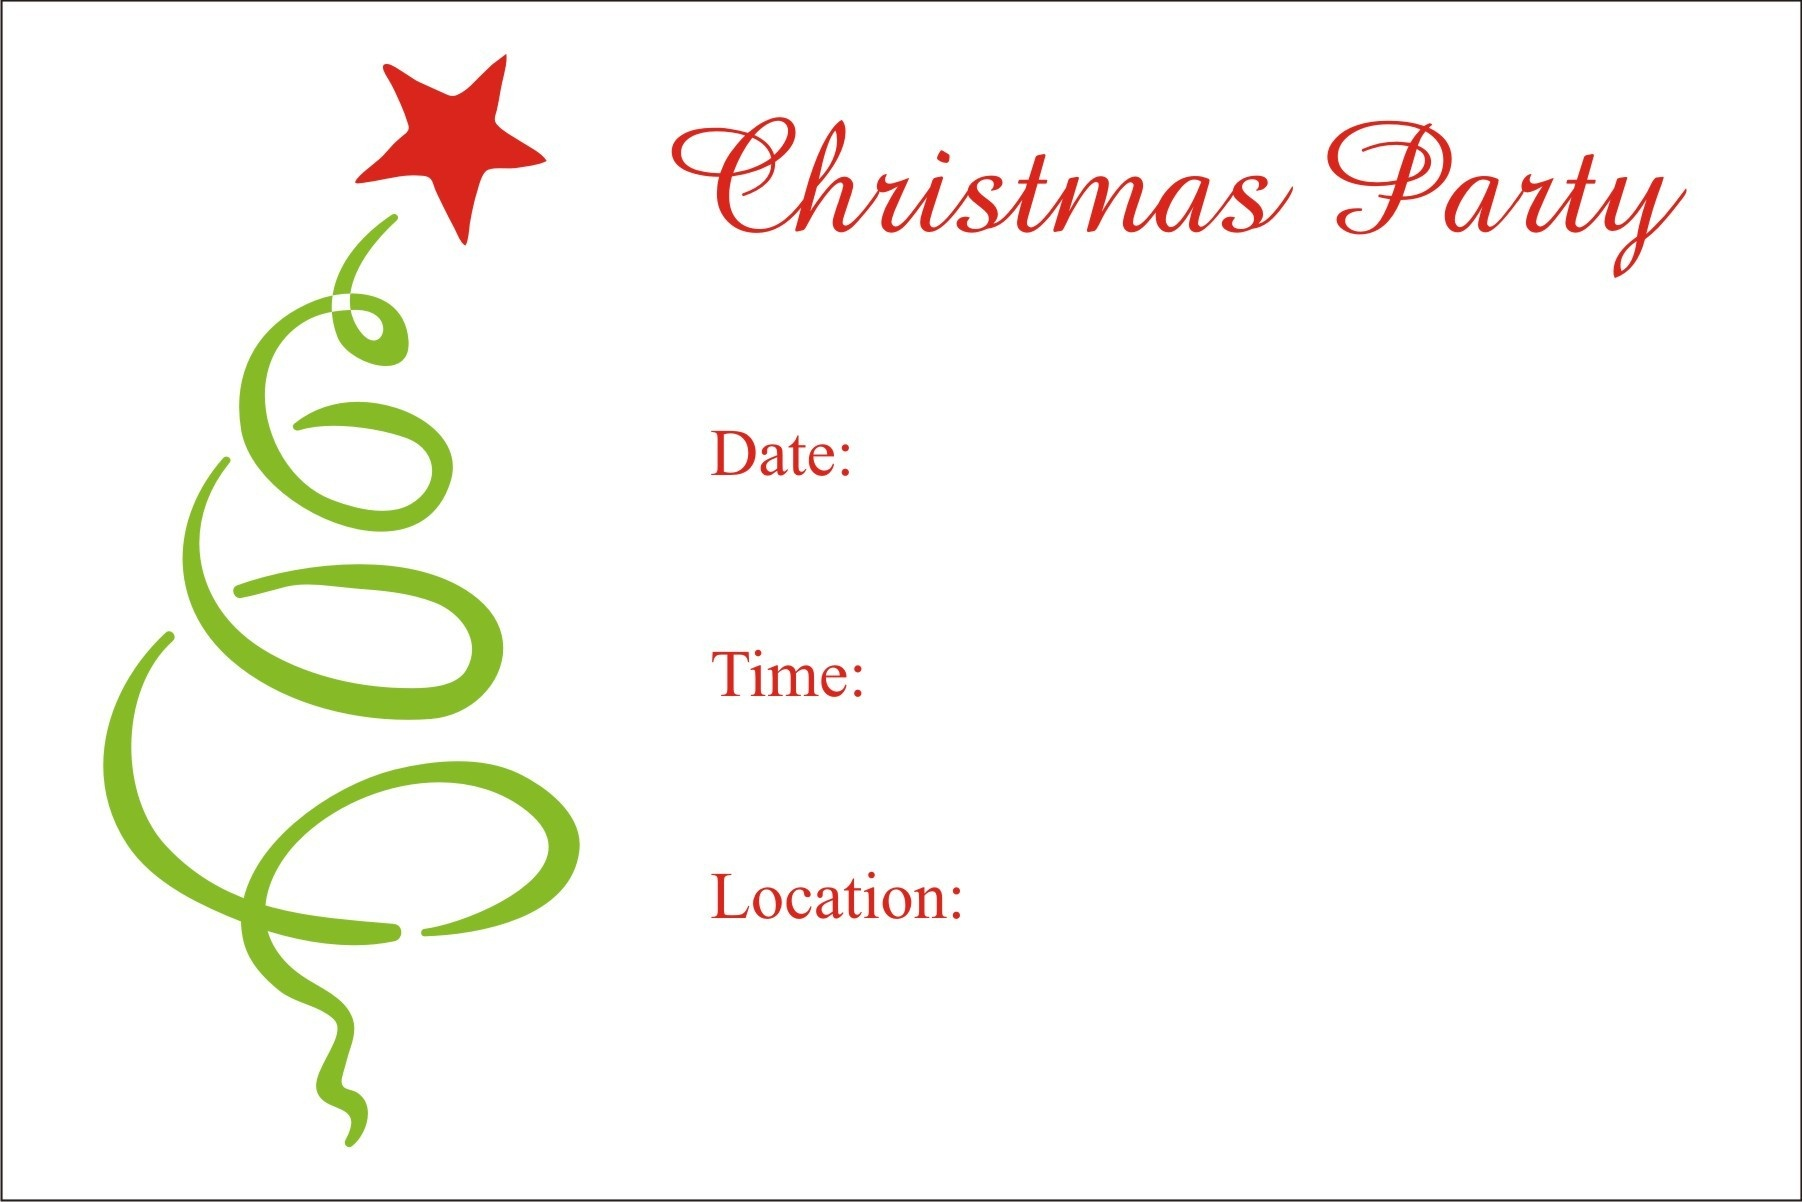 Christmas Party Free Printable Holiday Invitation Personalized Party - Free Printable Christmas Party Flyer Templates